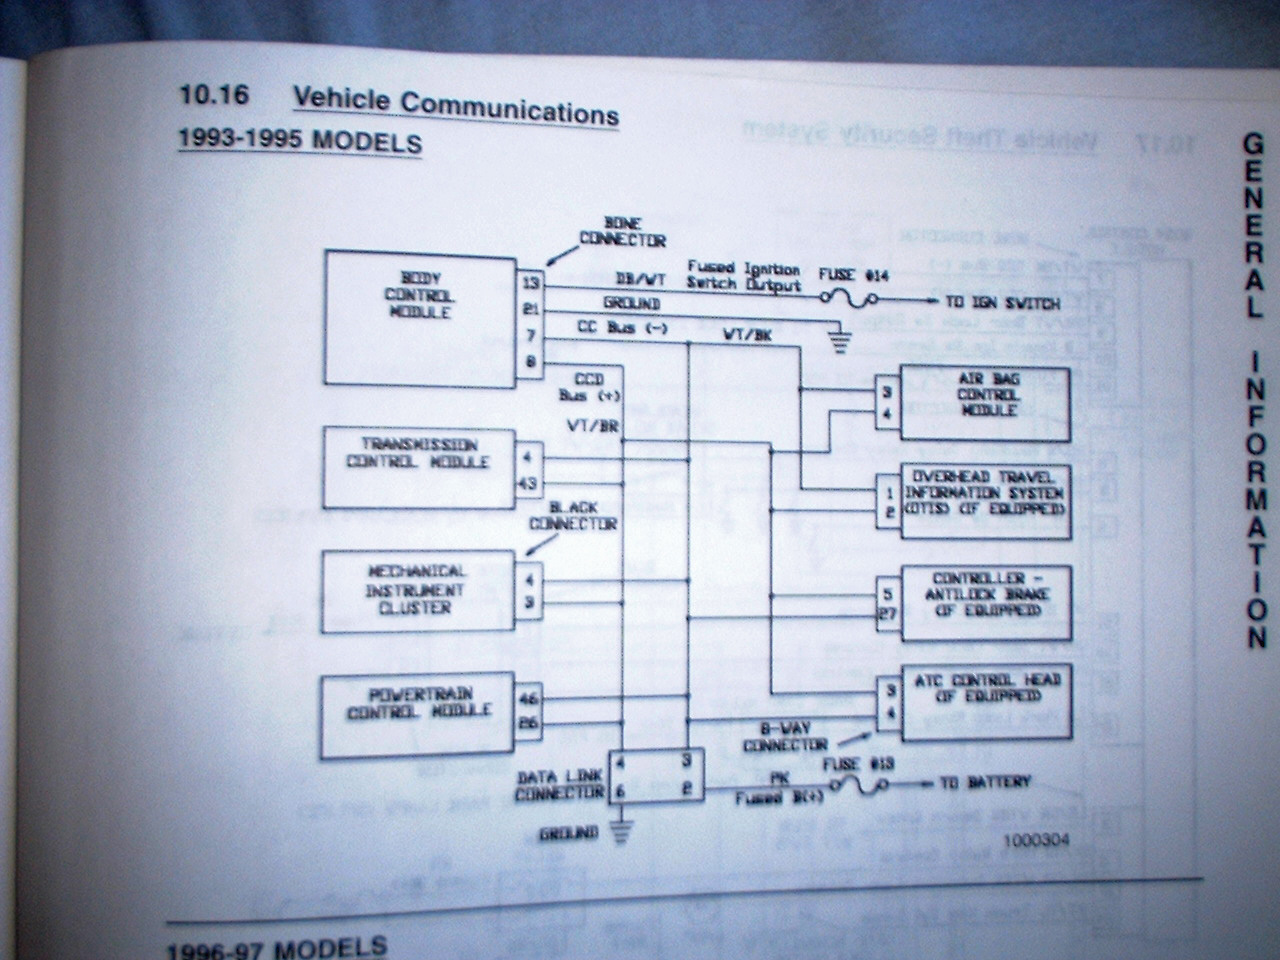 Vanagon View Topic My Middie 1994 Dodge Eagle Vision Tsi Instrument Cluster Fuse Box Diagram Image May Have Been Reduced In Size Click To Fullscreen